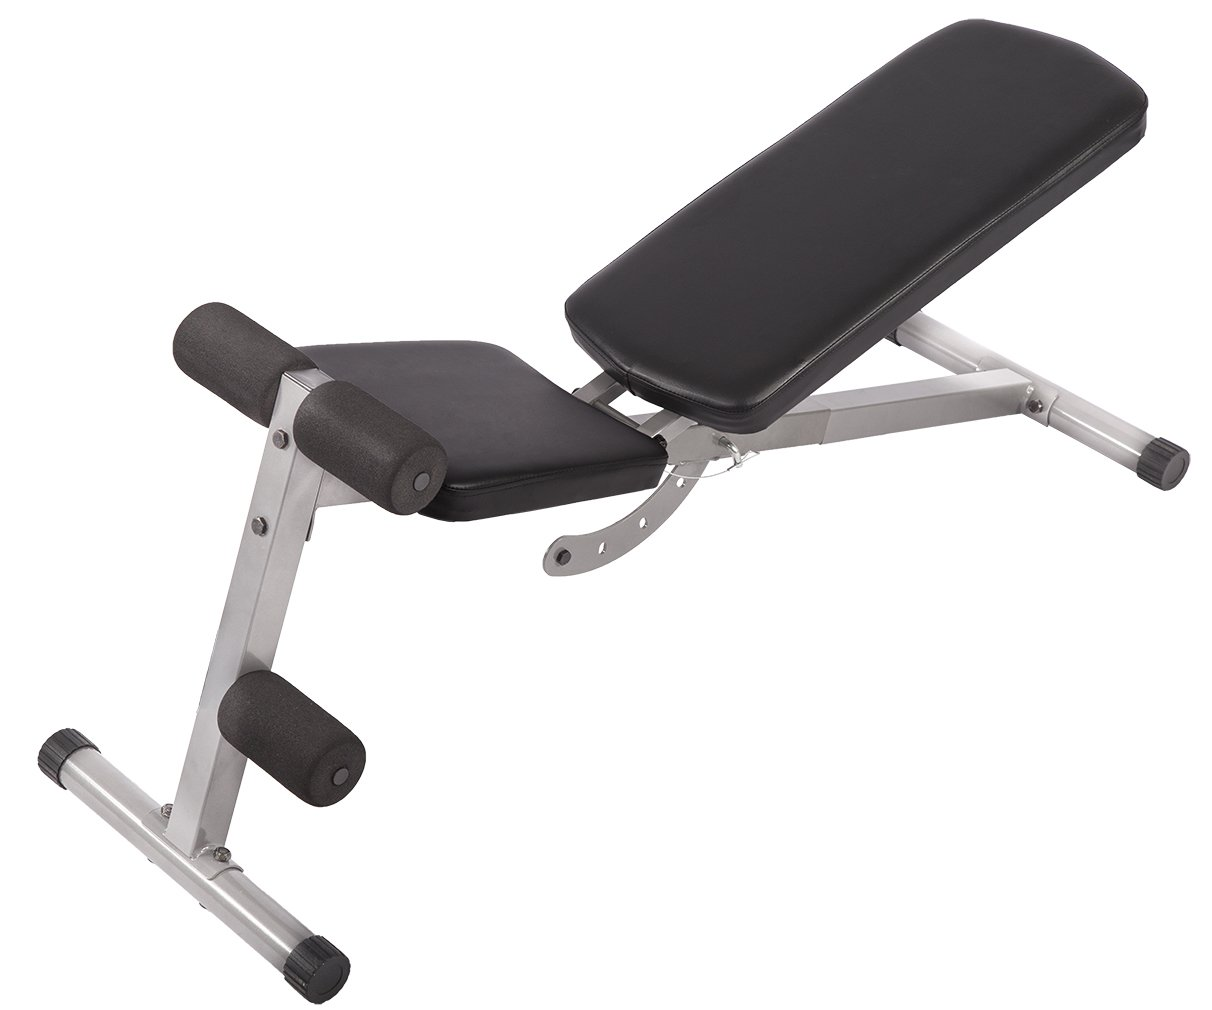 PayLessHere Incline Sit Up Bench Foldable Adjustable Workout Fitness Equipment W/AB Bench